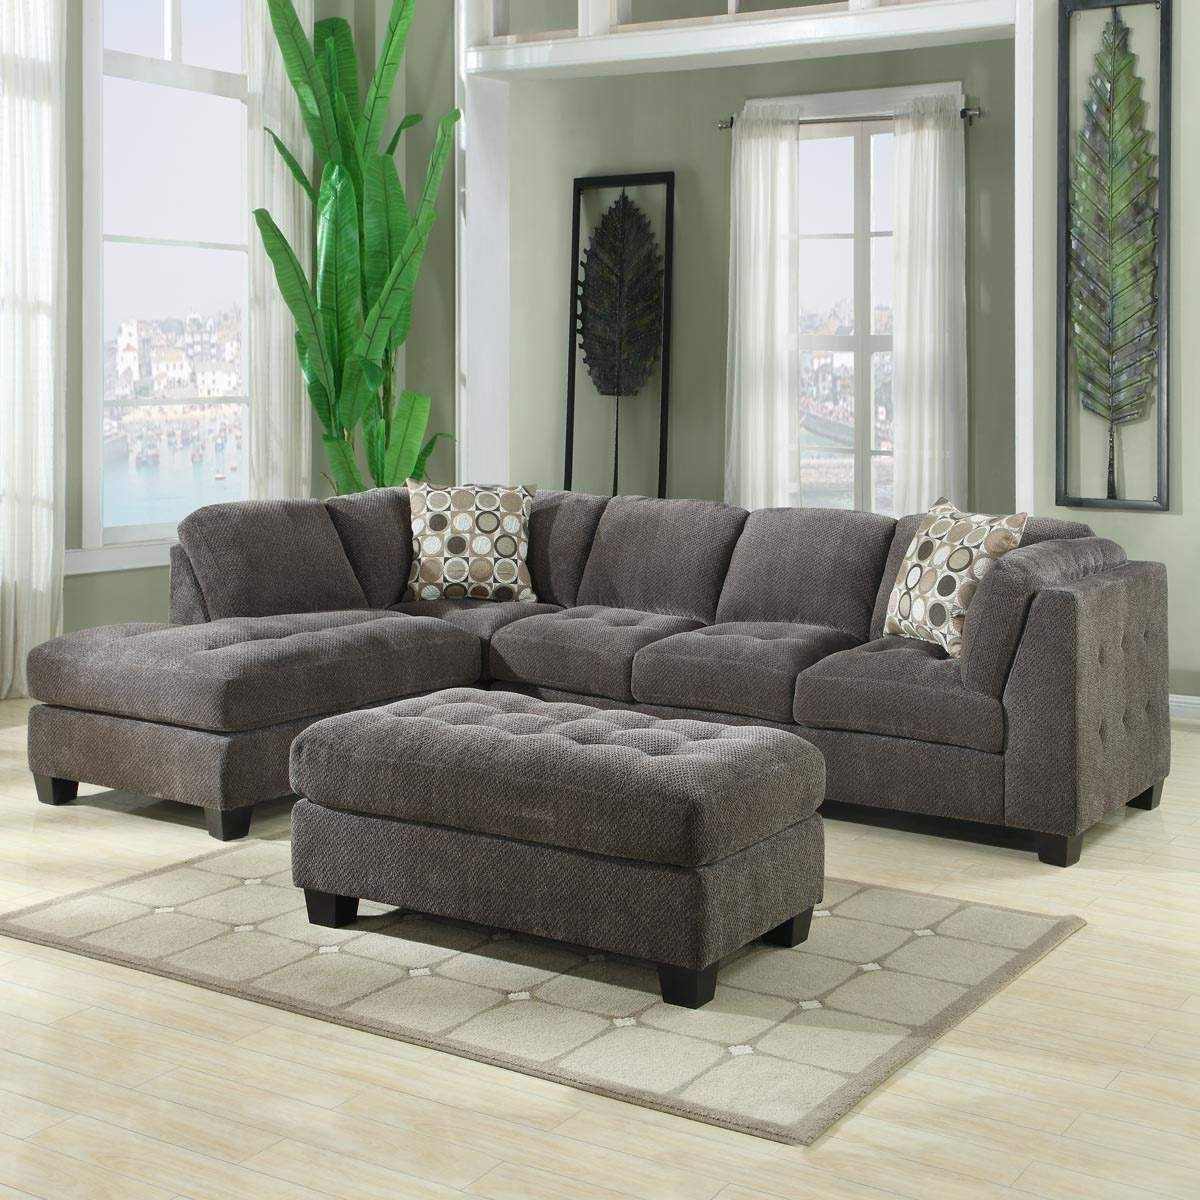 Norfolk Grey 3 Piece Sectional W/laf Chaise in Norfolk Grey 3 Piece Sectionals With Laf Chaise (Image 20 of 30)